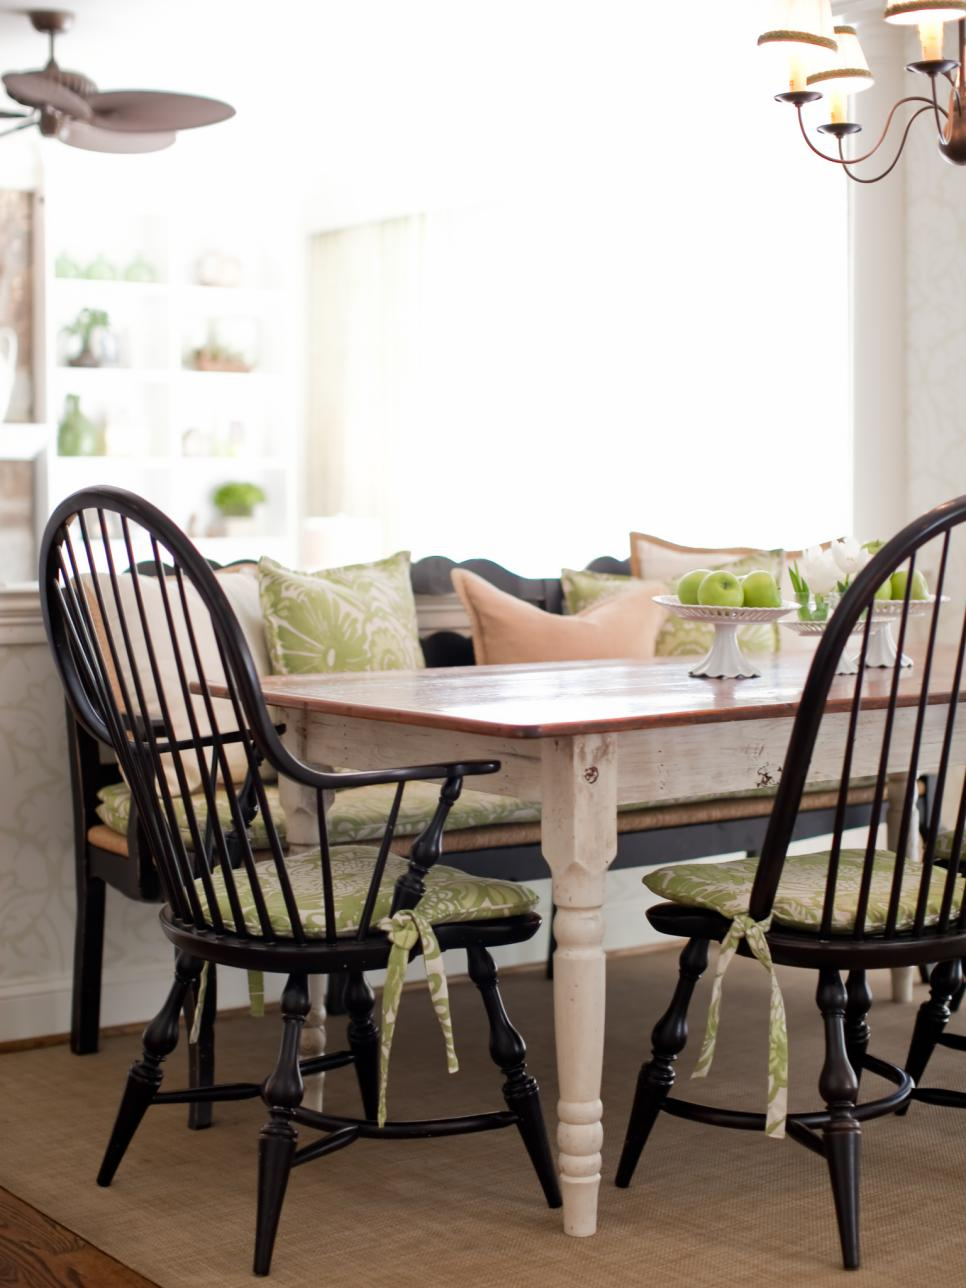 Black farmhouse chairs - 321 Black Dining Chairs Photos